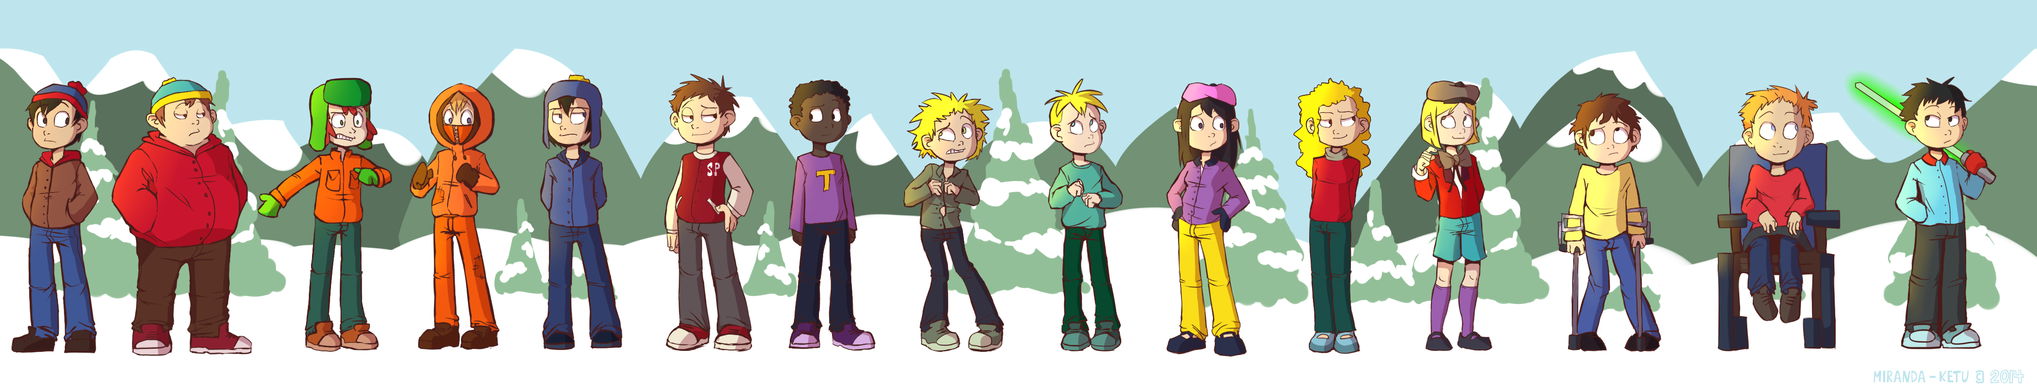 South Park by miranda-ketu